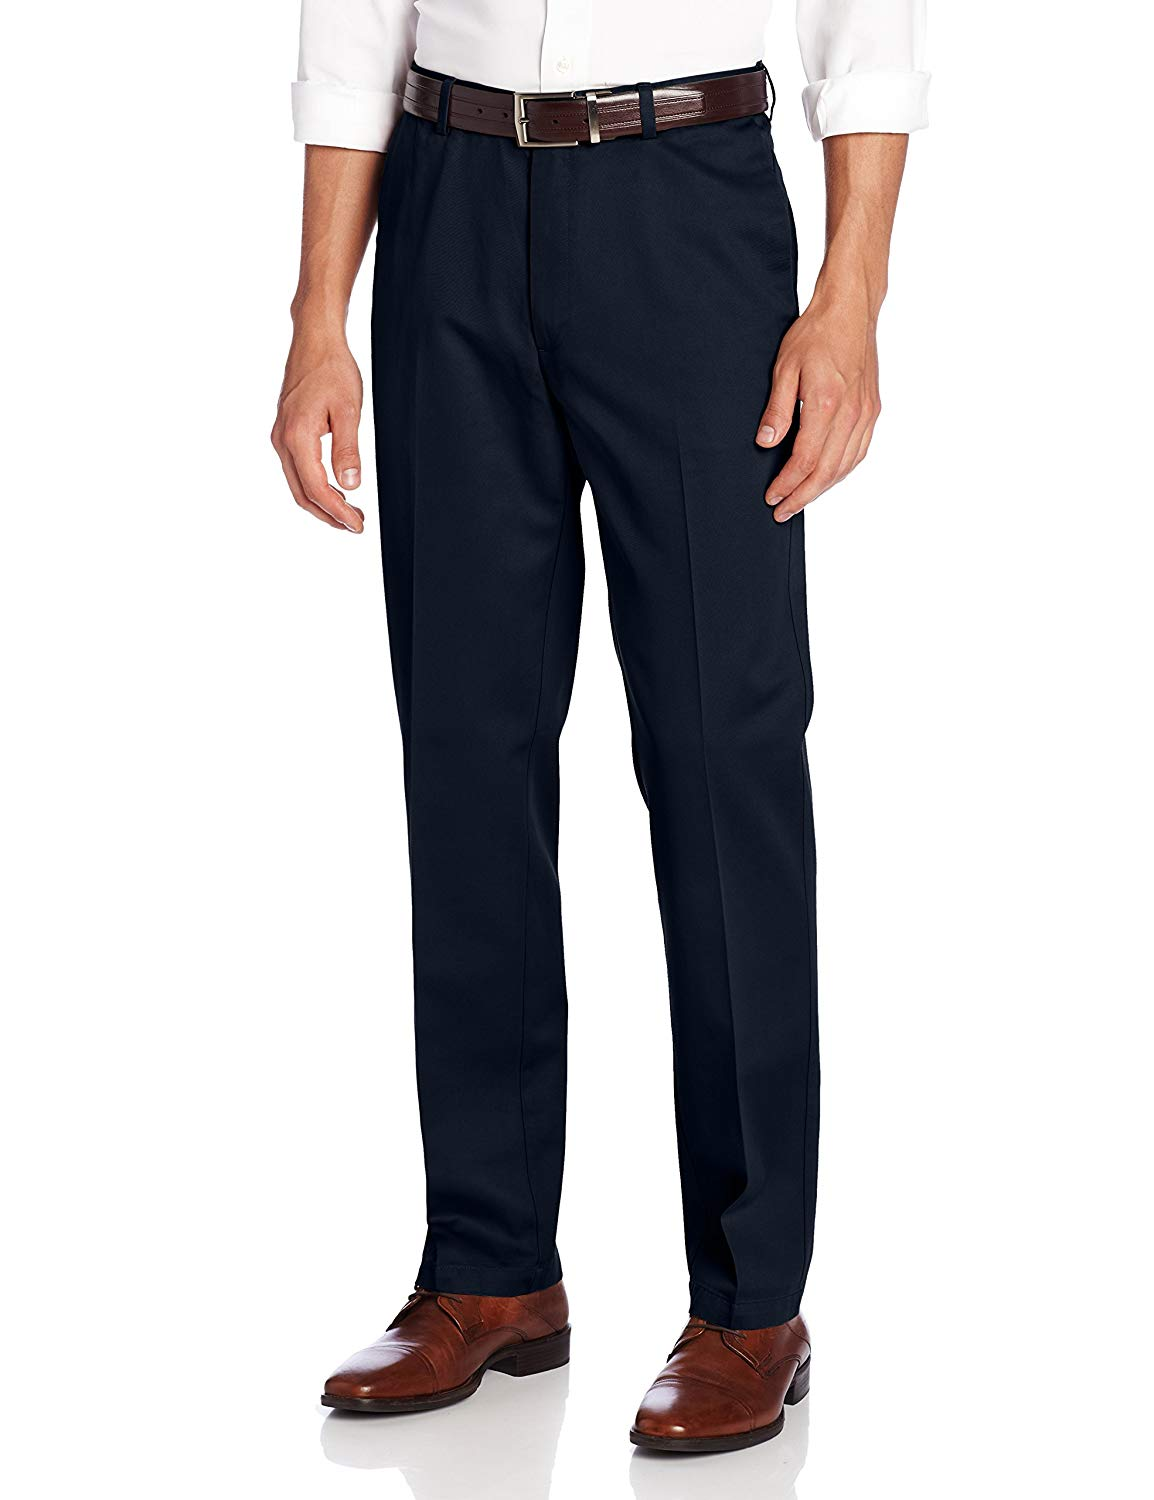 Haggar Mens Work to Weekend Hidden Expandable Waist Straight Fit Pant